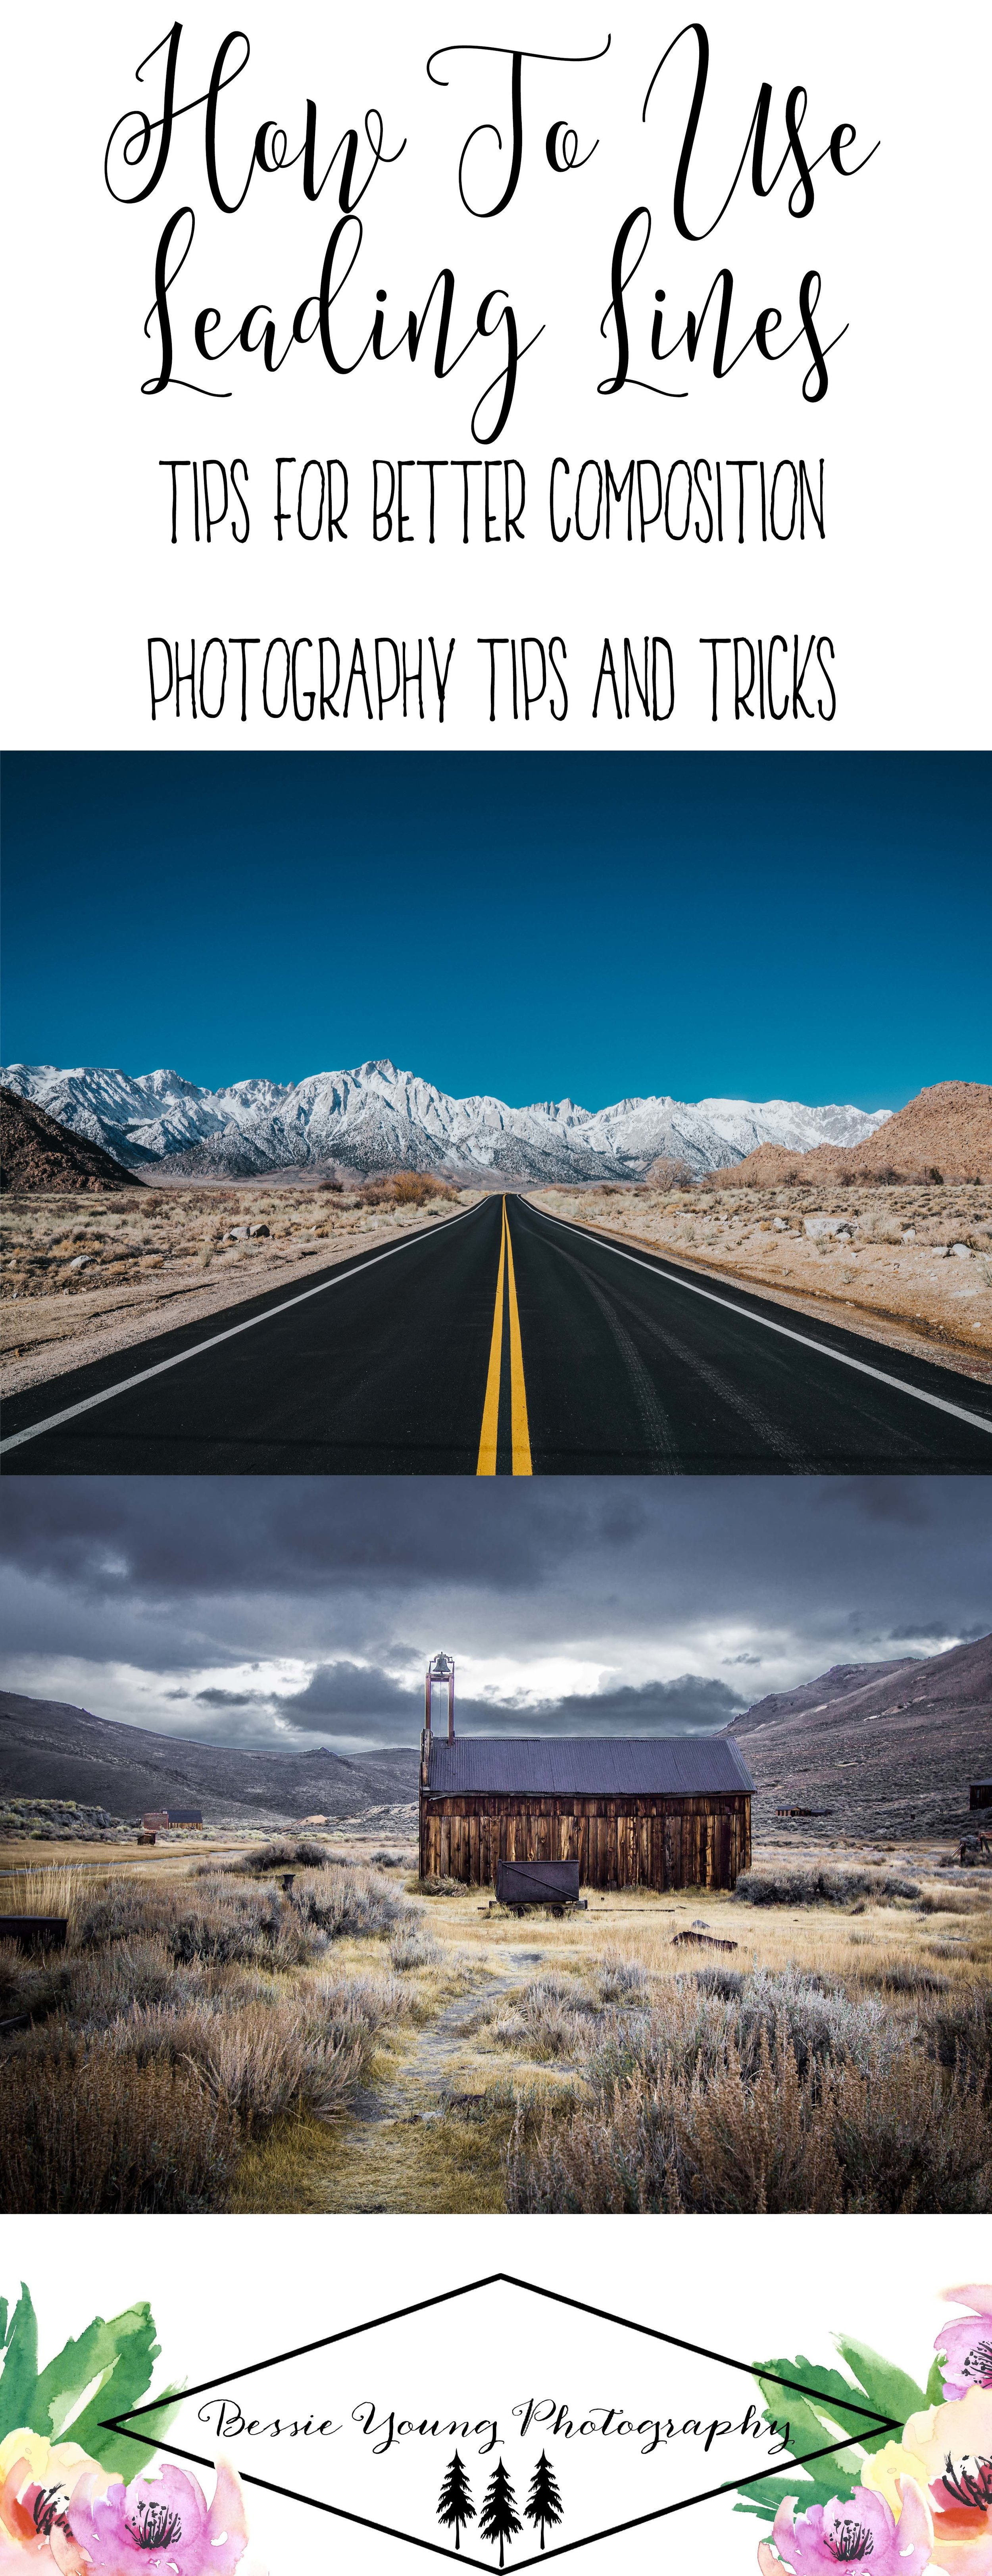 How To Use Leading Lines - Tips for Better Composition by Bessie Young Photography - Photography Tips and Tricks